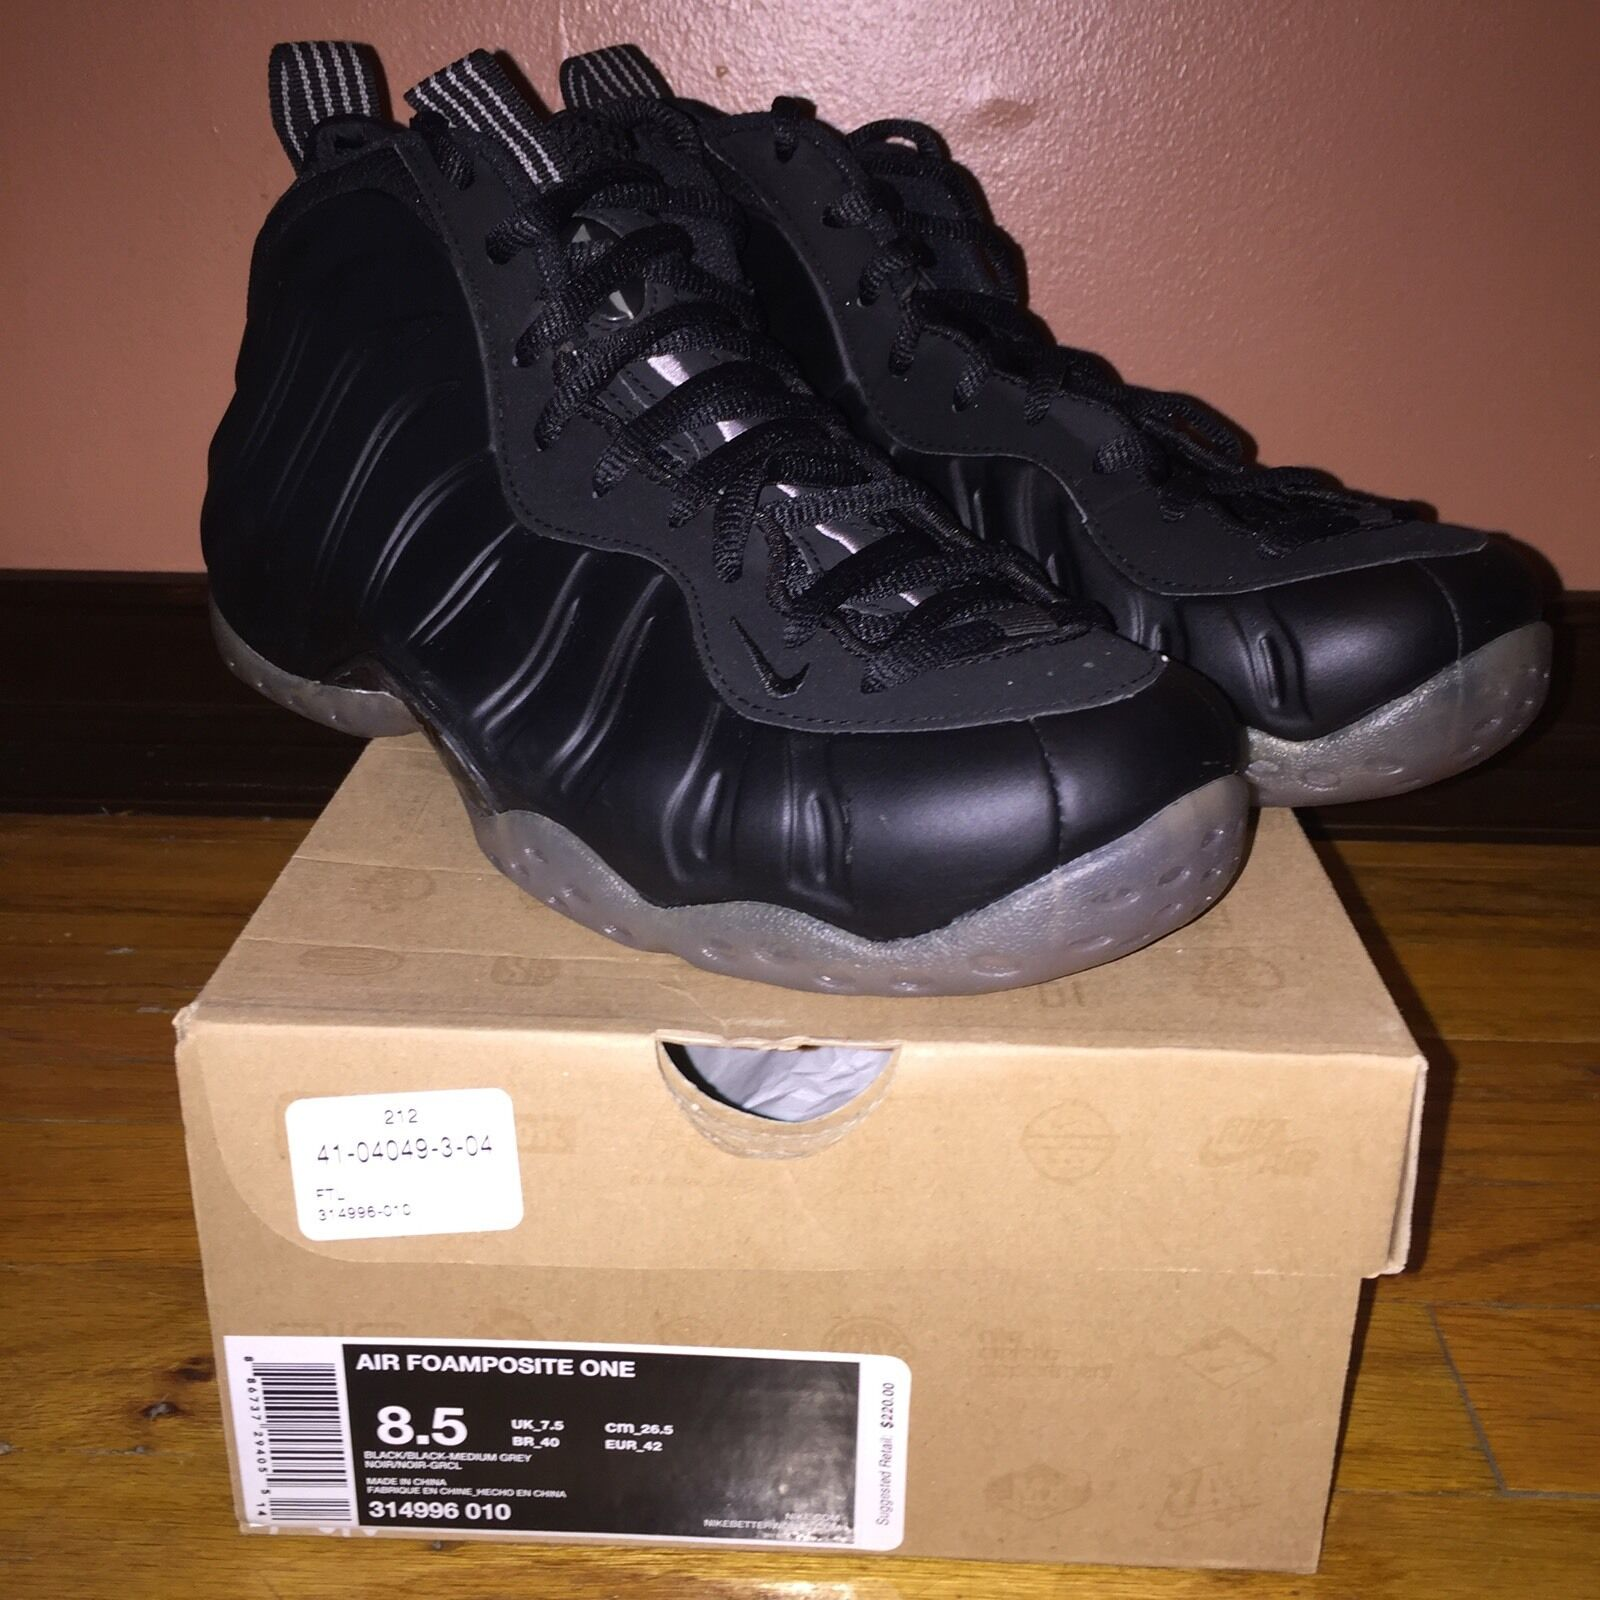 Nike Air Foamposite One Black/Black-Medium Grey Stealth 314996 010 Sz 8.5